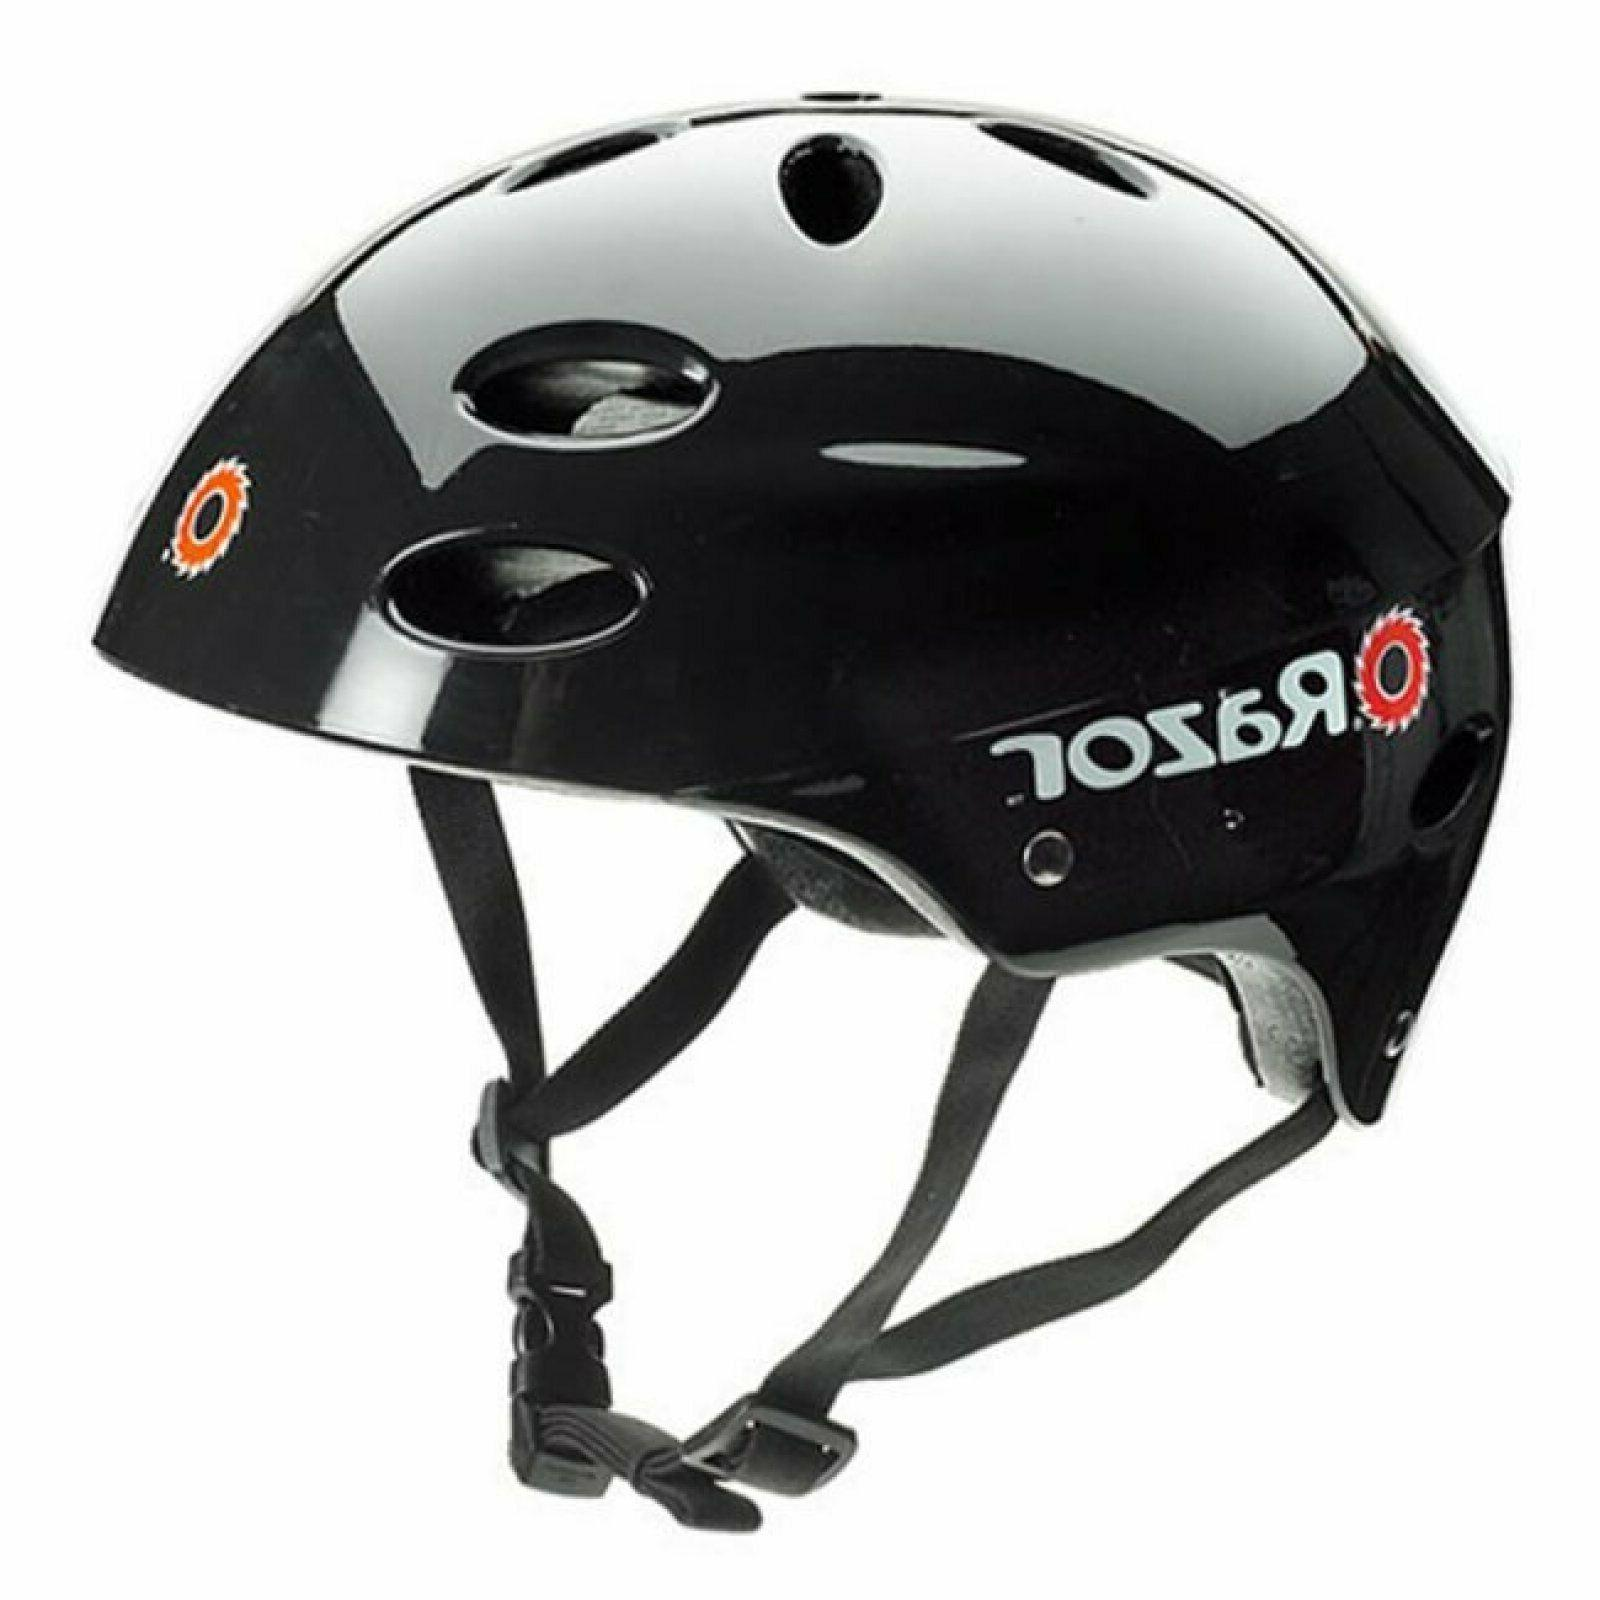 Flybar Gear astunt Helmet Multi-Sport Adjustable Fit  Protec